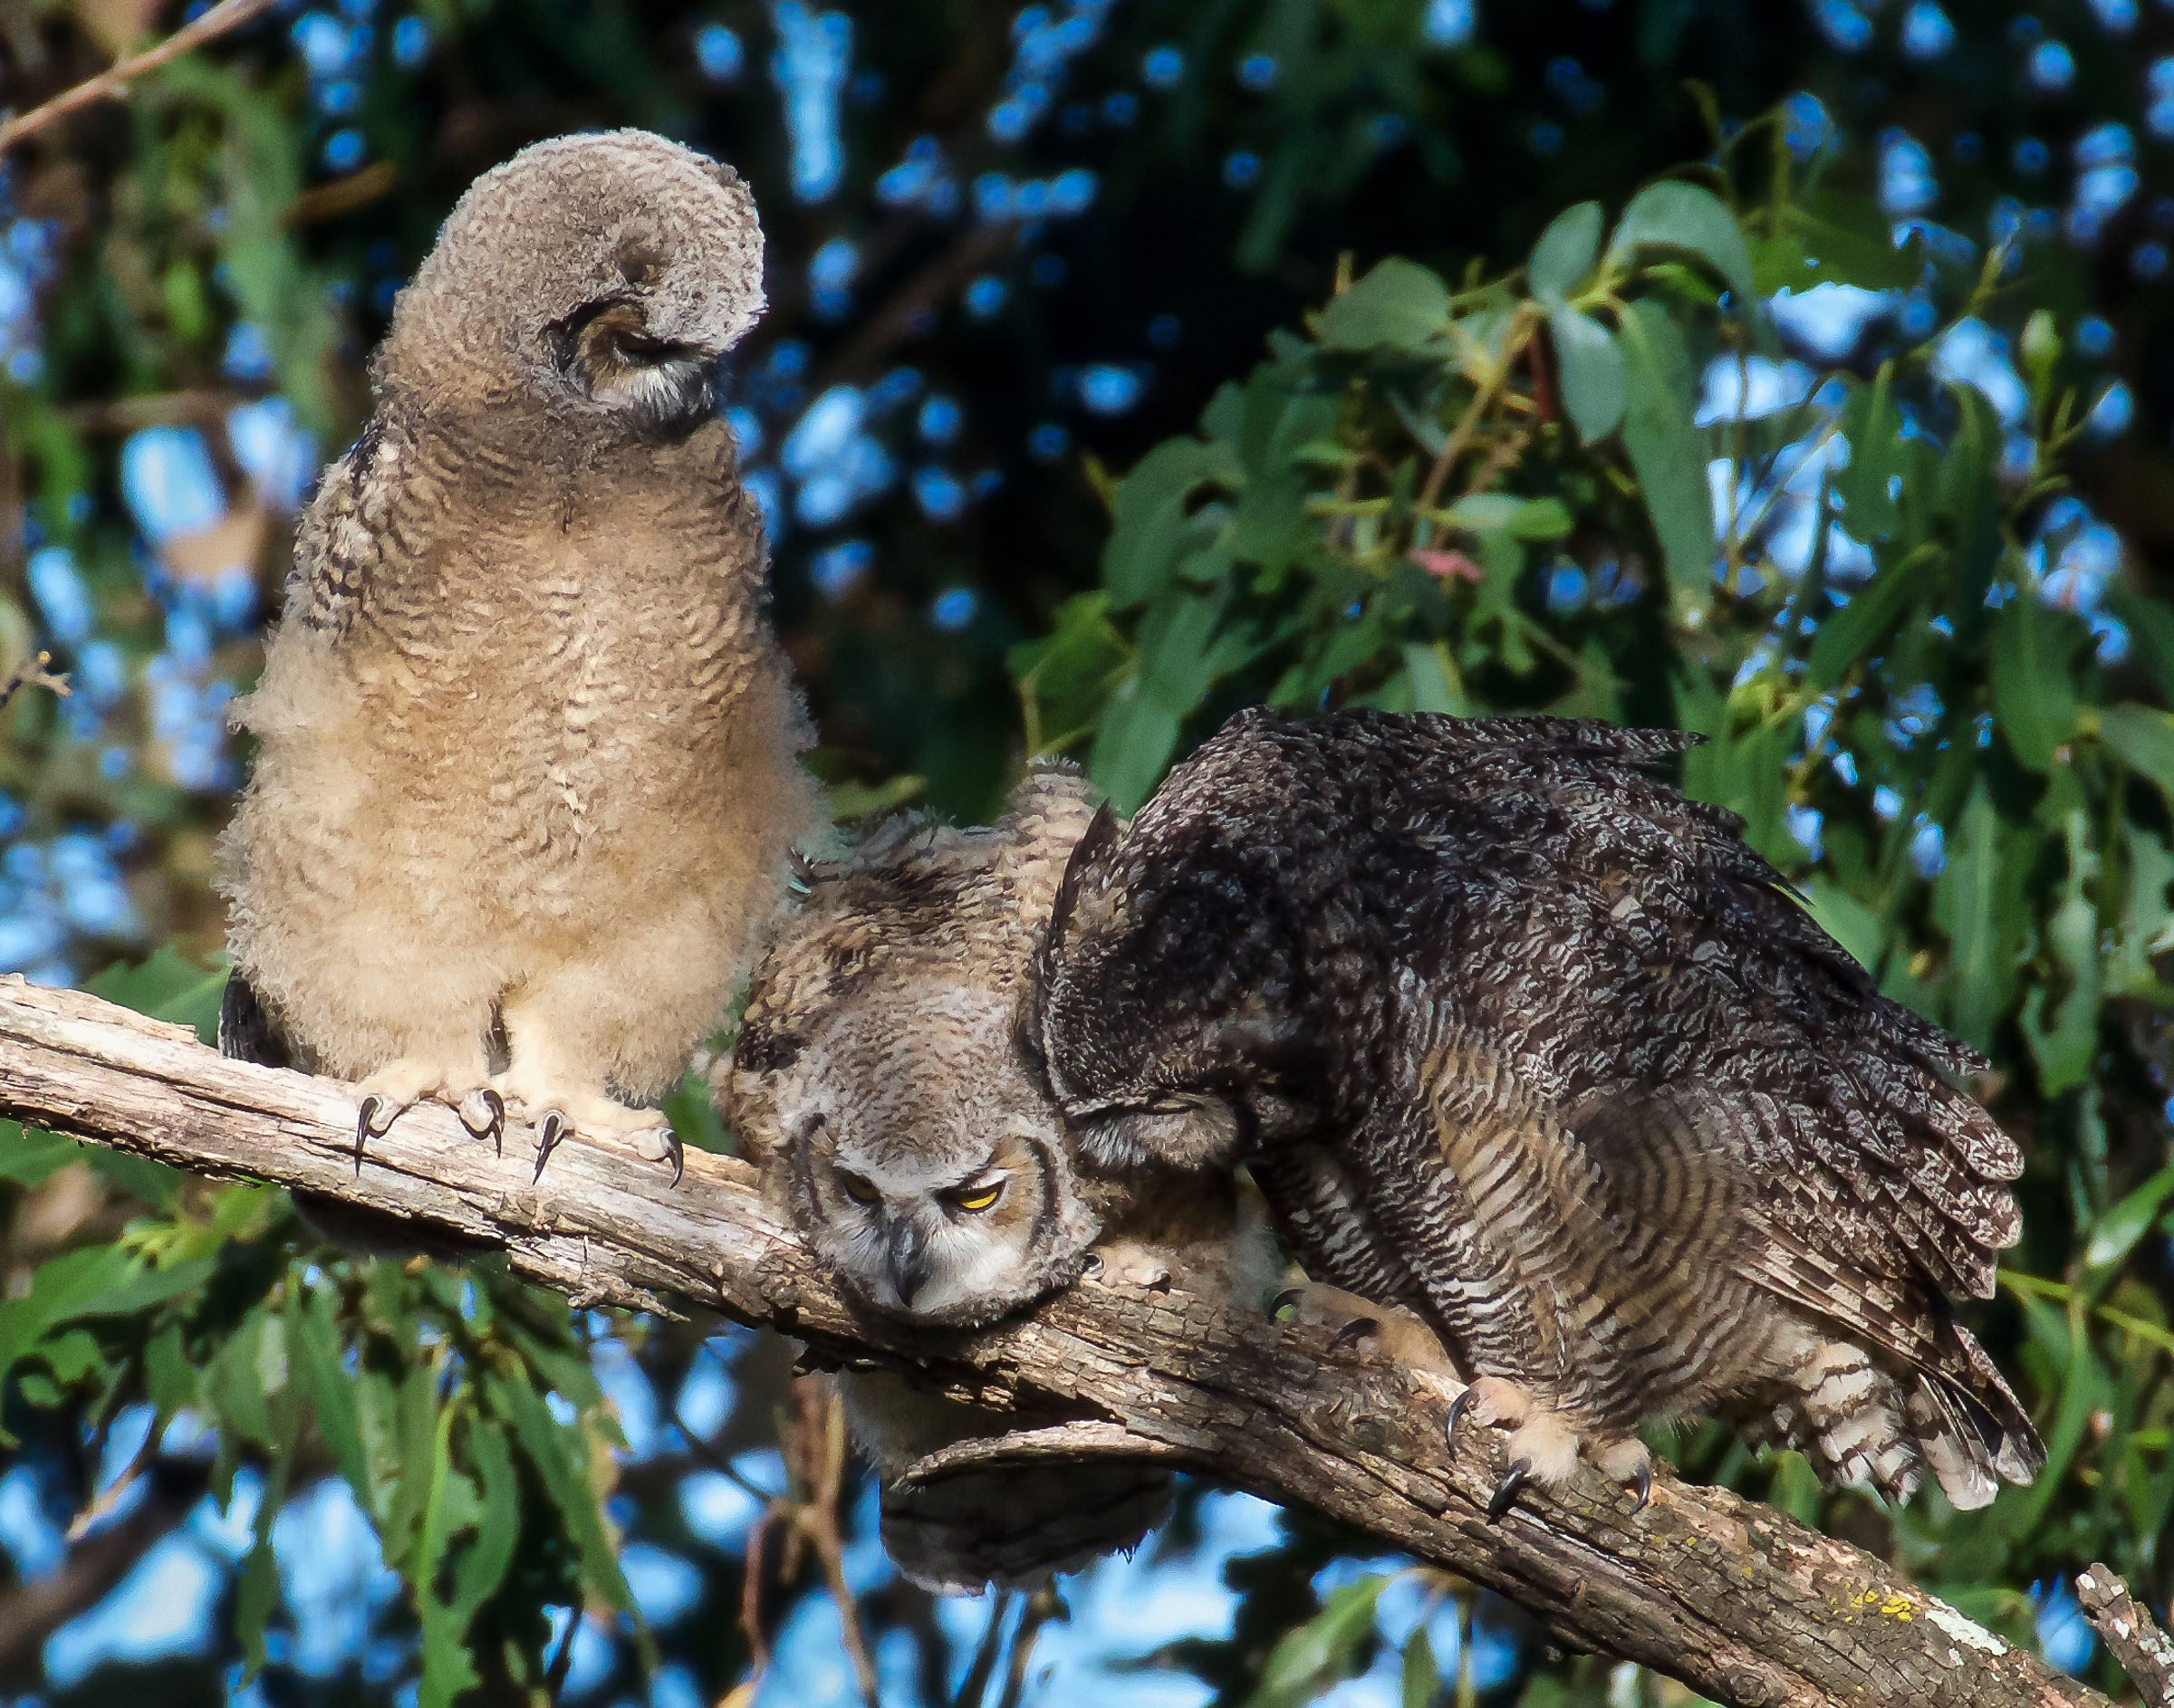 mother-great-horned-owl-grooming-owlets-8.jpg